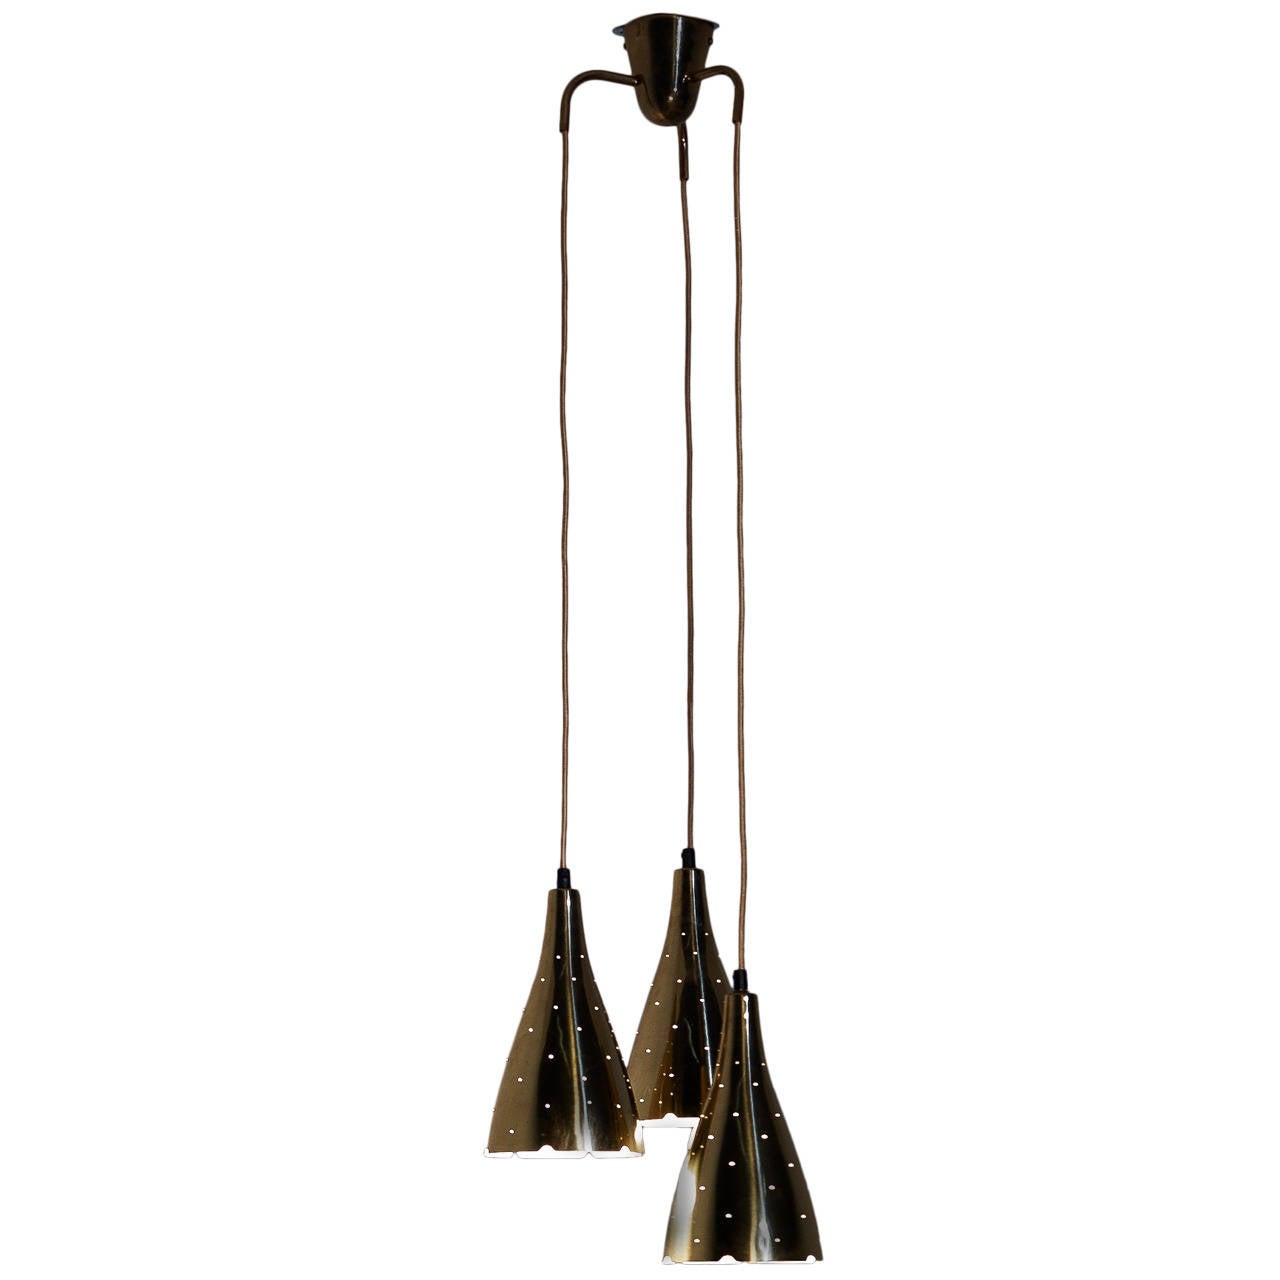 Paavo Tynell Pendant Lamp for Idman Oy, Model 10130 / 3, 1950s